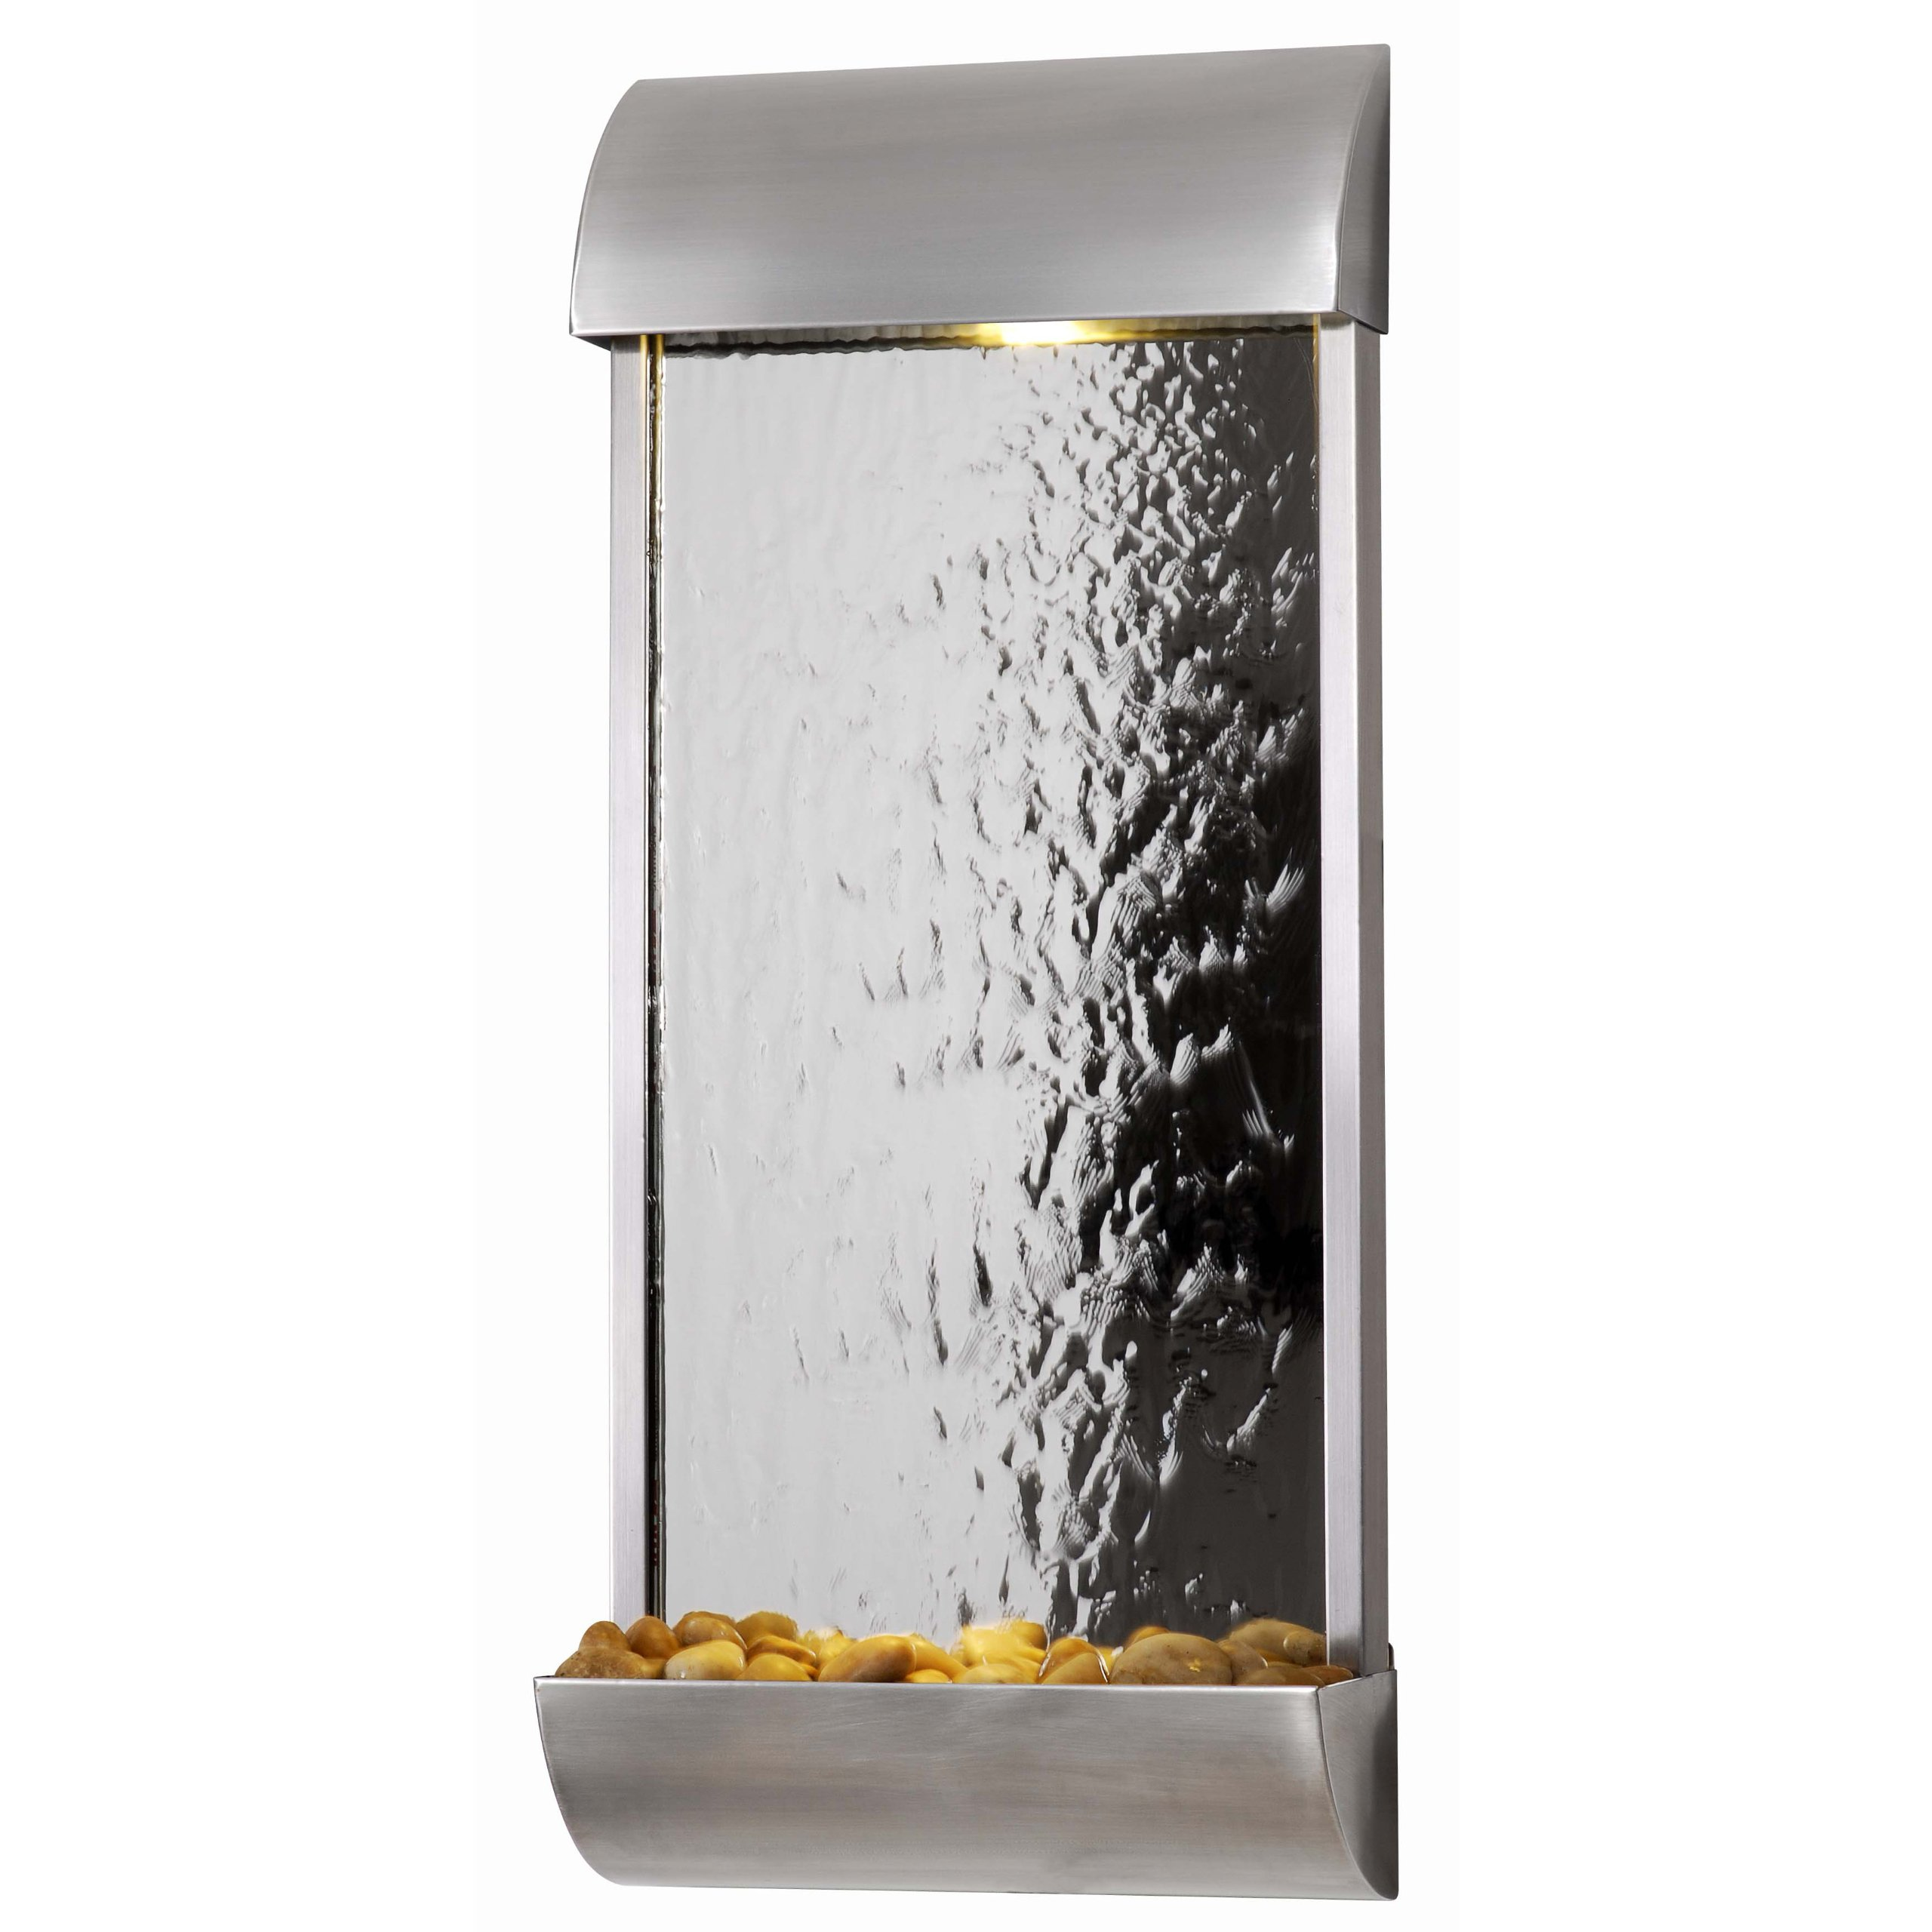 Kenroy Home 50052STST Waterville Wall Fountain, Stainless Steel Finish with Mirrored Face by Kenroy Home